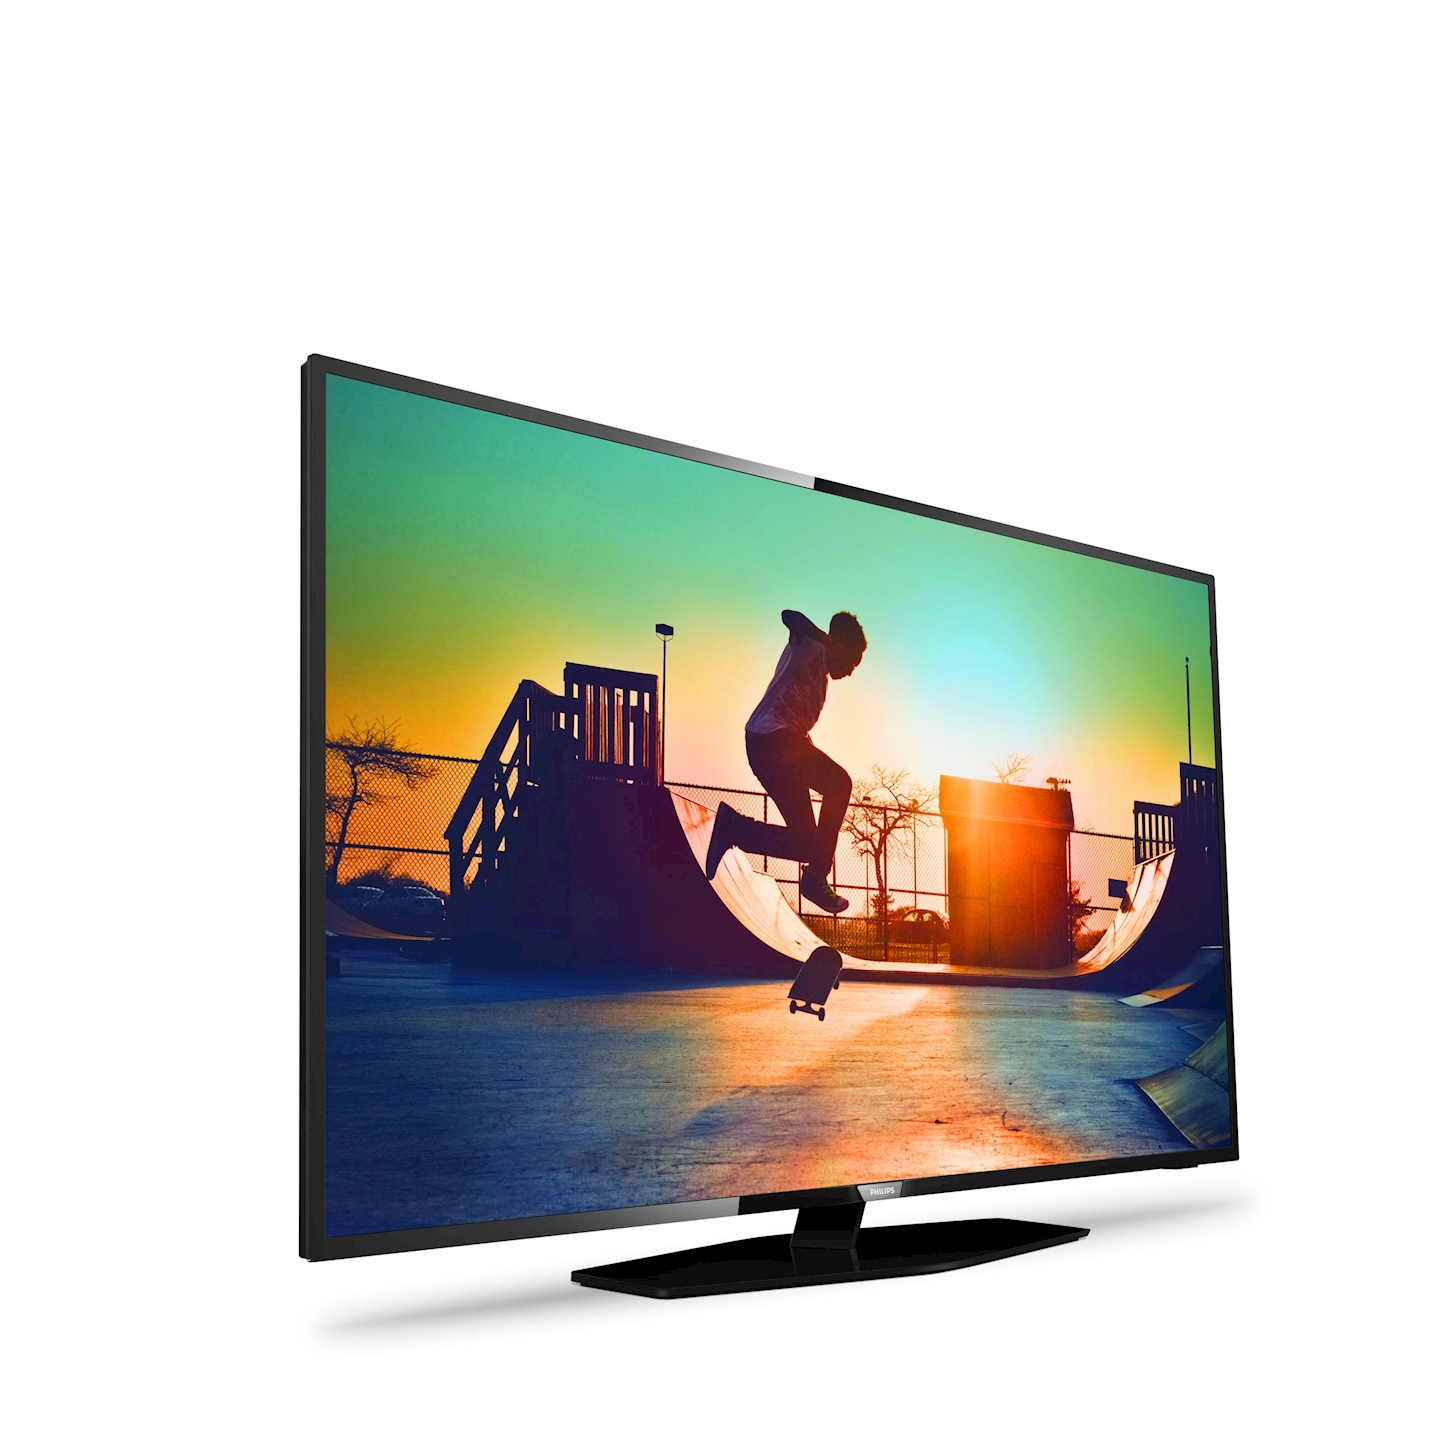 Philips 6000 Series T L Viseur Led Smart Tv Ultra Plat 4  # Meuble Tv Ultra Fin